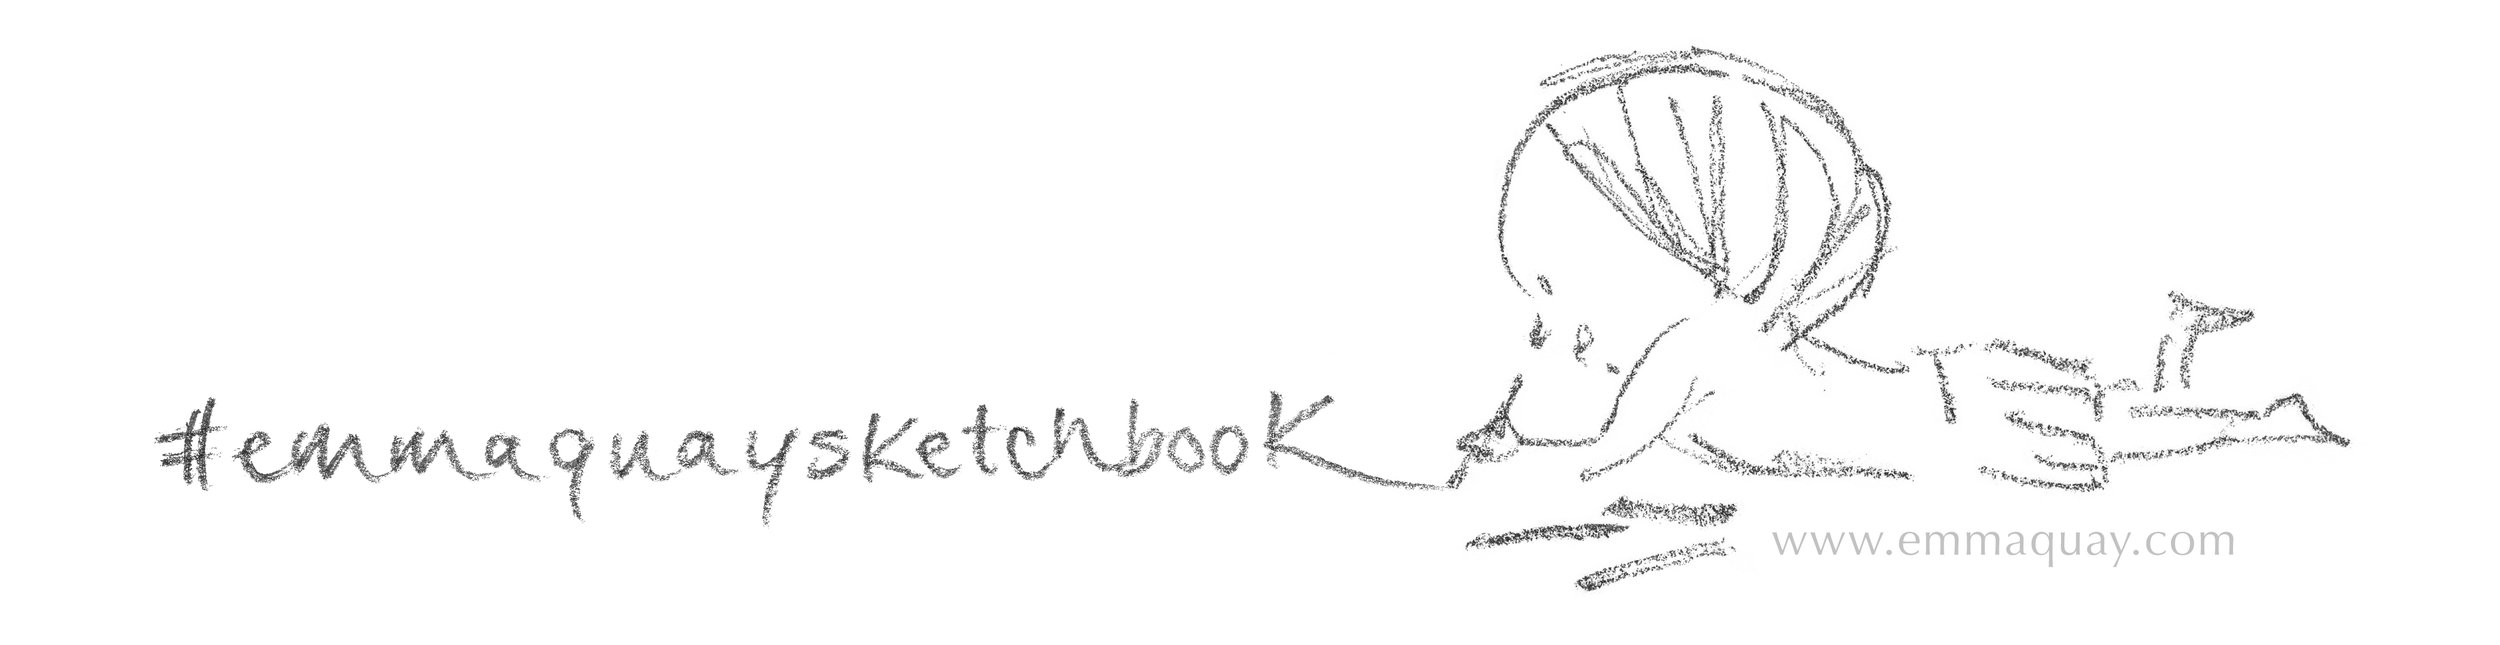 My Sketchbook — Emma Quay, illustrator #emmaquaysketchbook - www.emmaquay.com